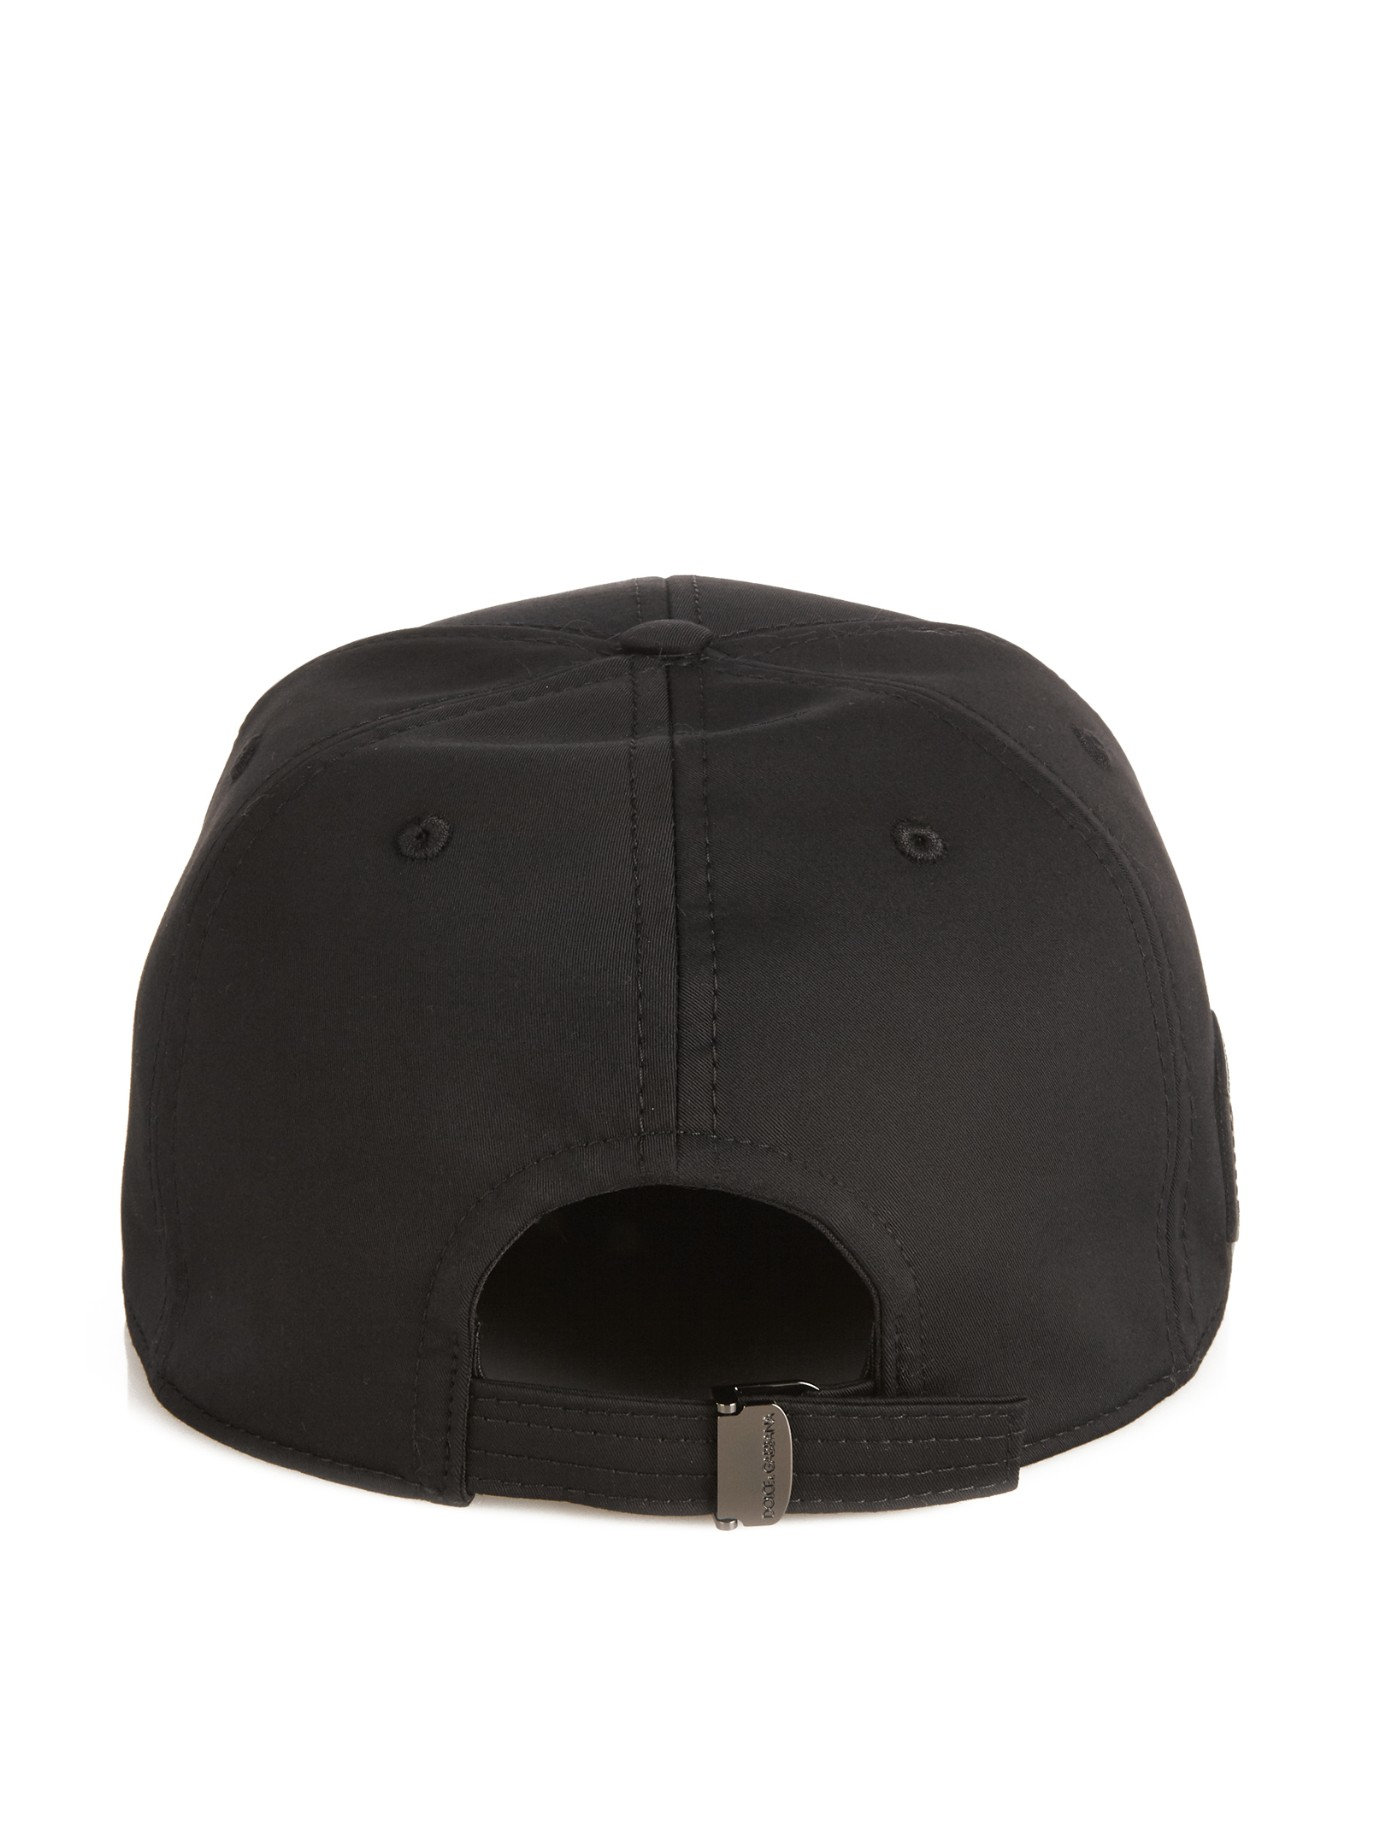 Lyst - Dolce   Gabbana Logo-plaque Baseball Hat in Black for Men af06bd79d53